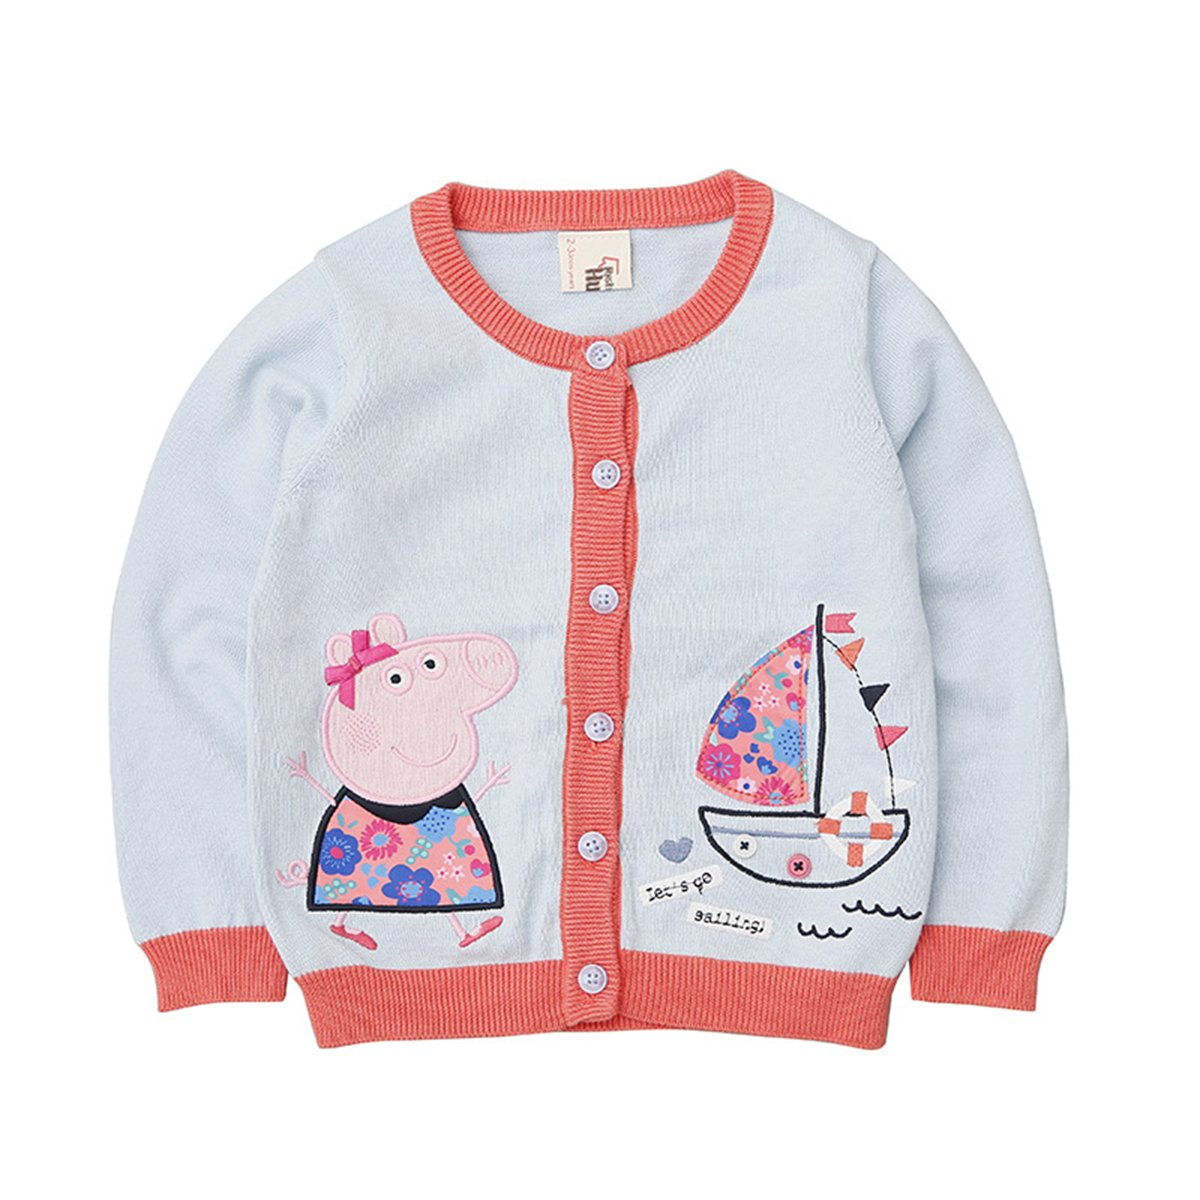 Little Girls' Cute Pink Pig Embroidery Knit Cardigan Sweater (Baby/Toddler) 130cm/fit 6-7 Years Old